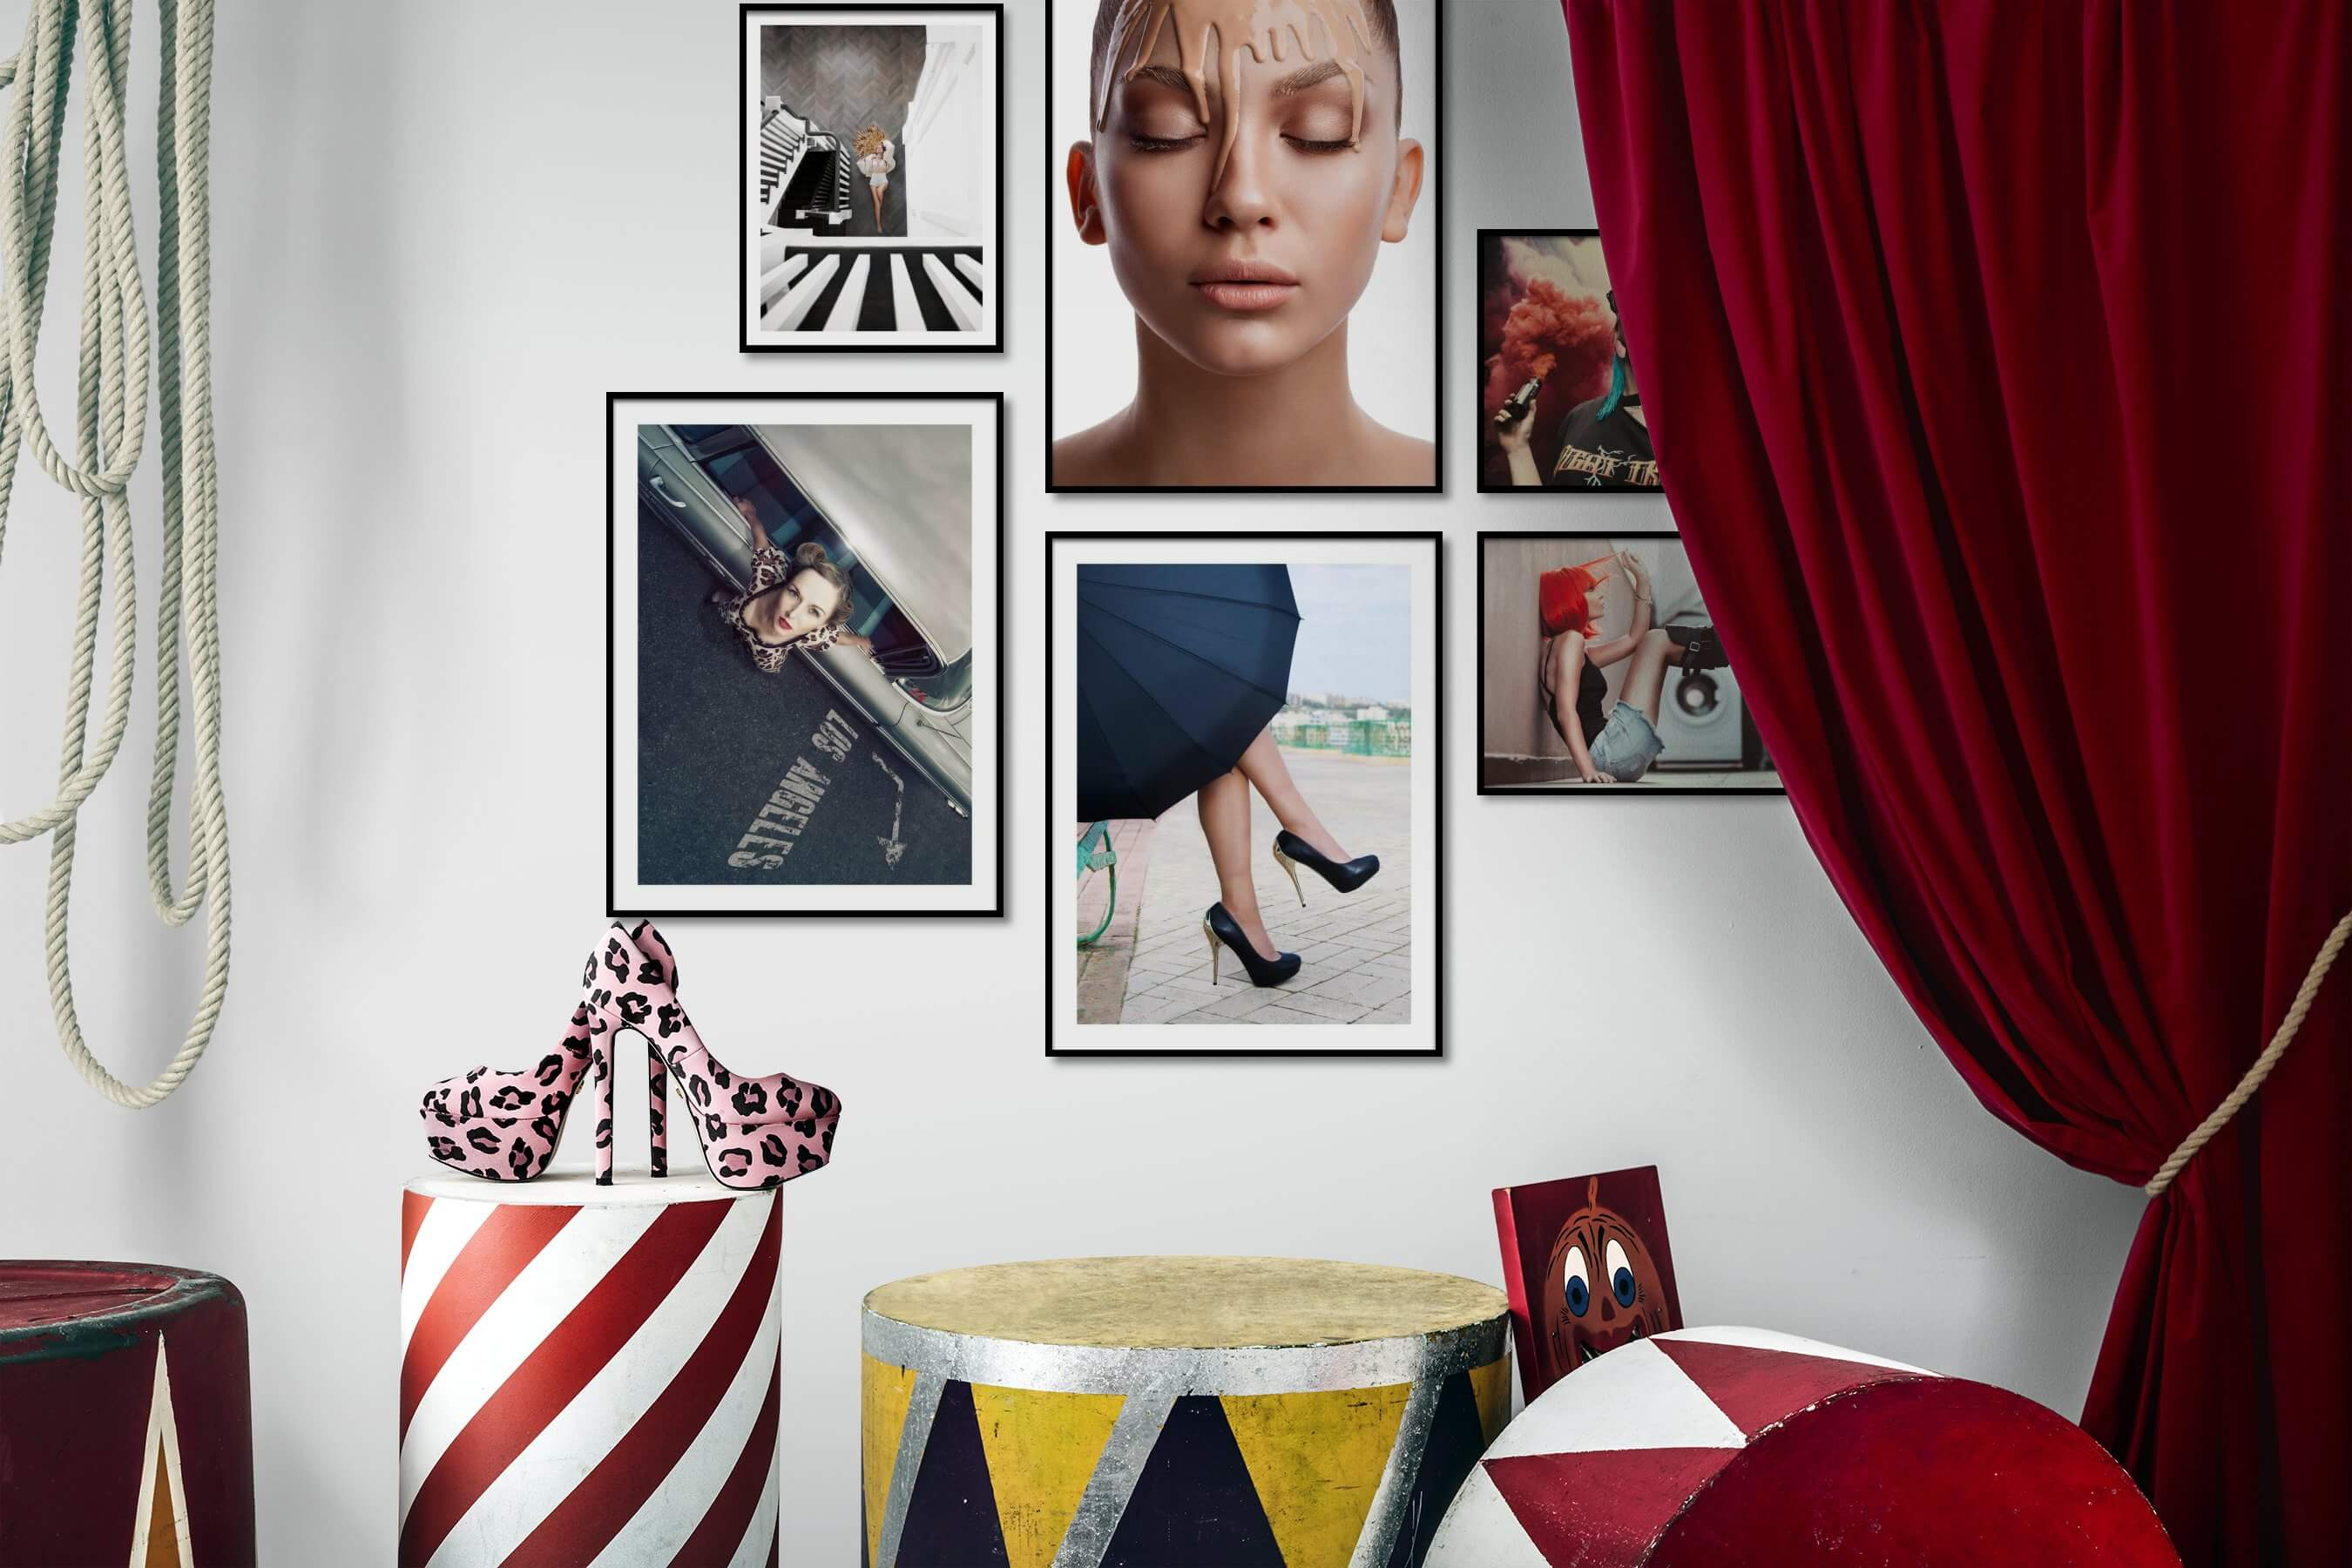 Gallery wall idea with six framed pictures arranged on a wall depicting Fashion & Beauty, Americana, Vintage, and City Life